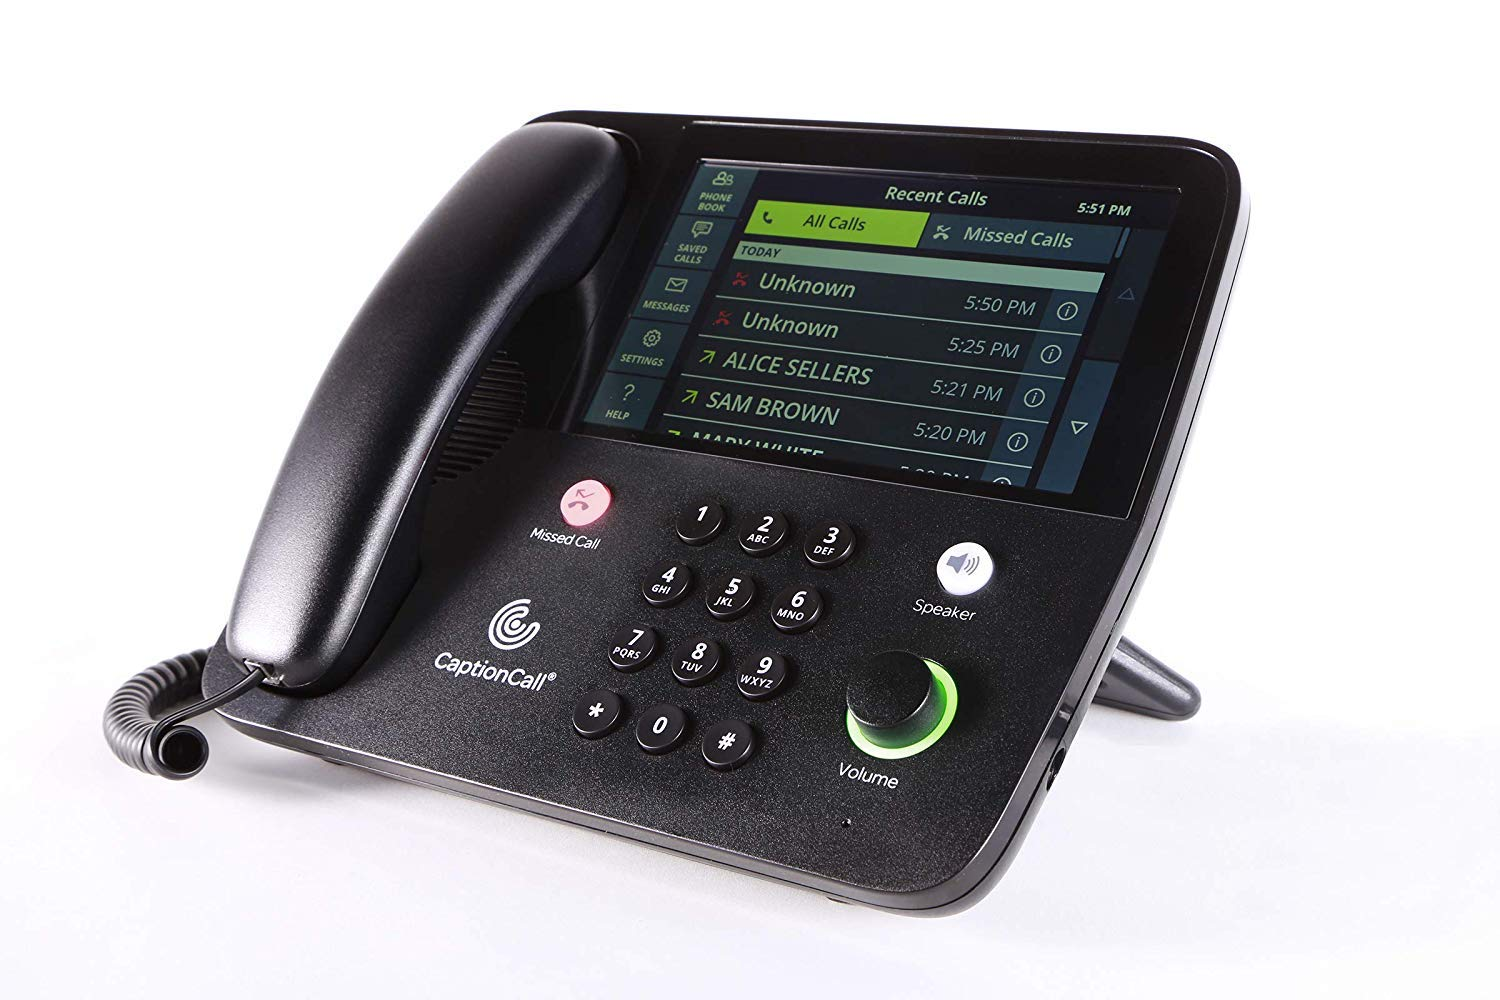 CaptionCall 67Tb Amplified Captioned Corded Home Telephone Touch Screen, 58dB Amplification, Caller ID, Answering Machine, Bluetooth, Loud Ringer Hearing Impaired by CaptionCall (Image #3)